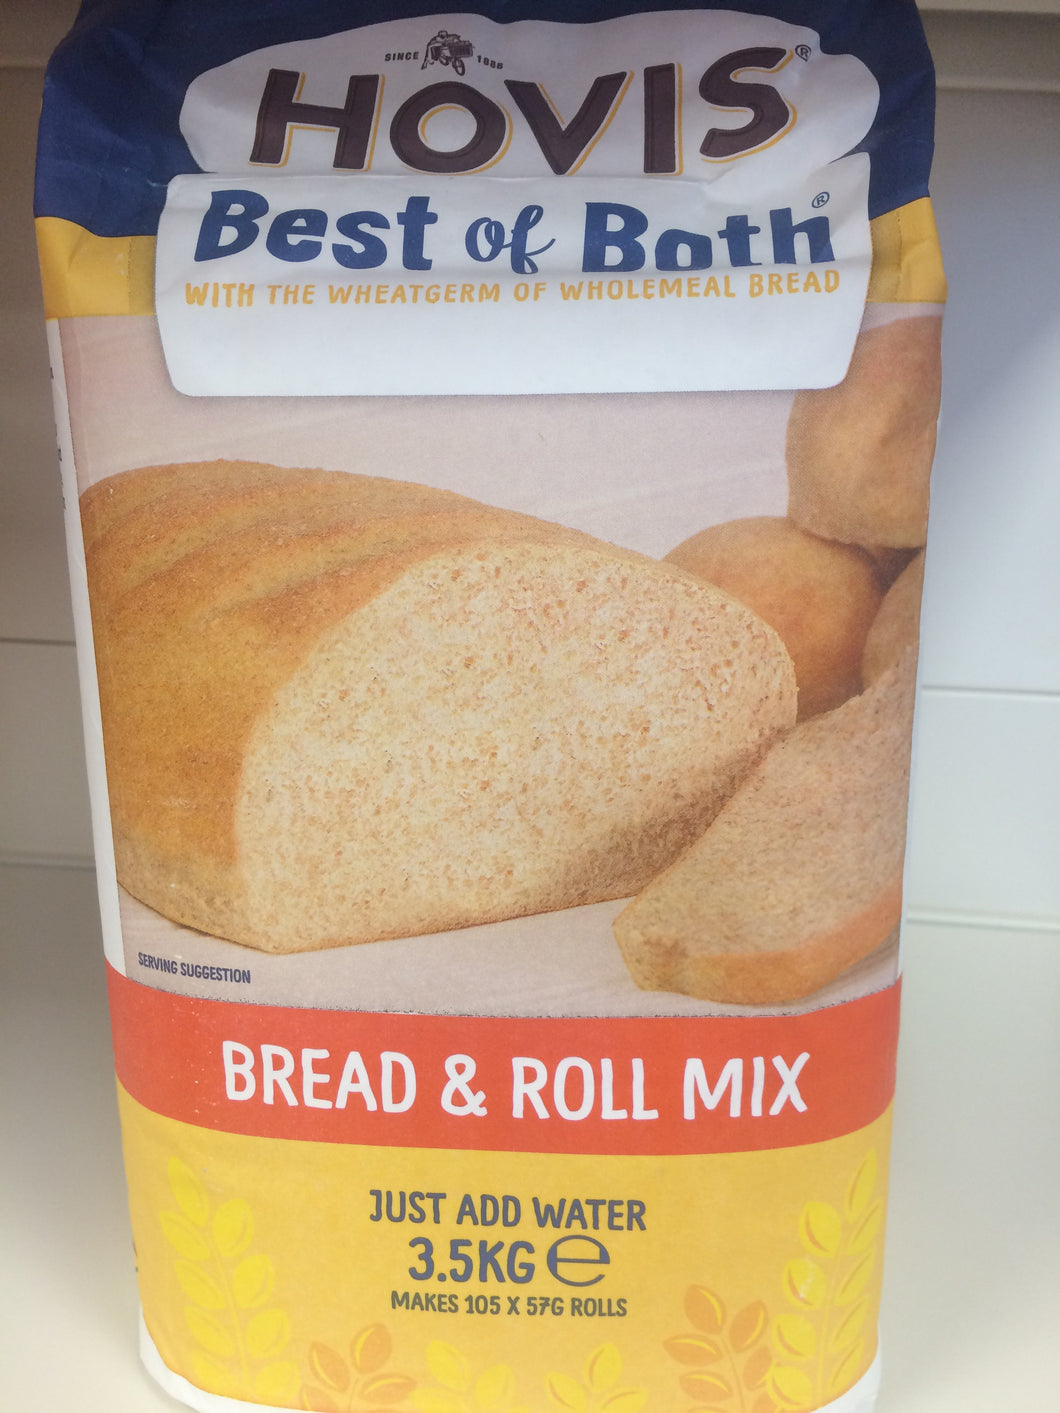 Hovis Best of Both Bread & Roll Mix 3.5kg - Just Add Water